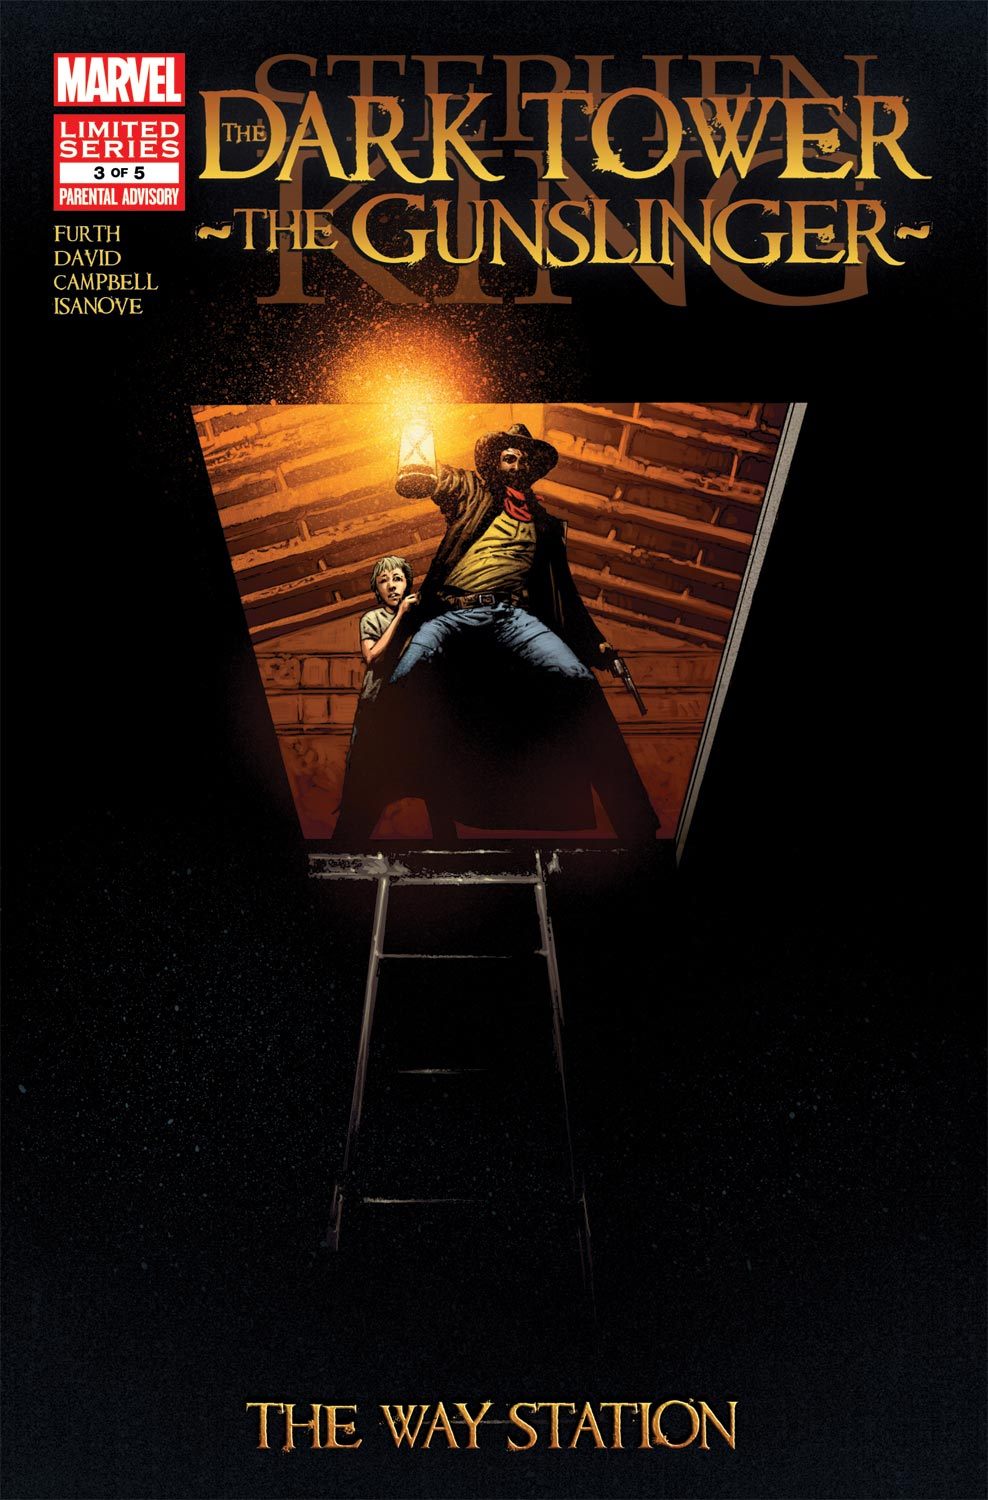 Dark Tower: The Gunslinger - The Way Station (2011) #3